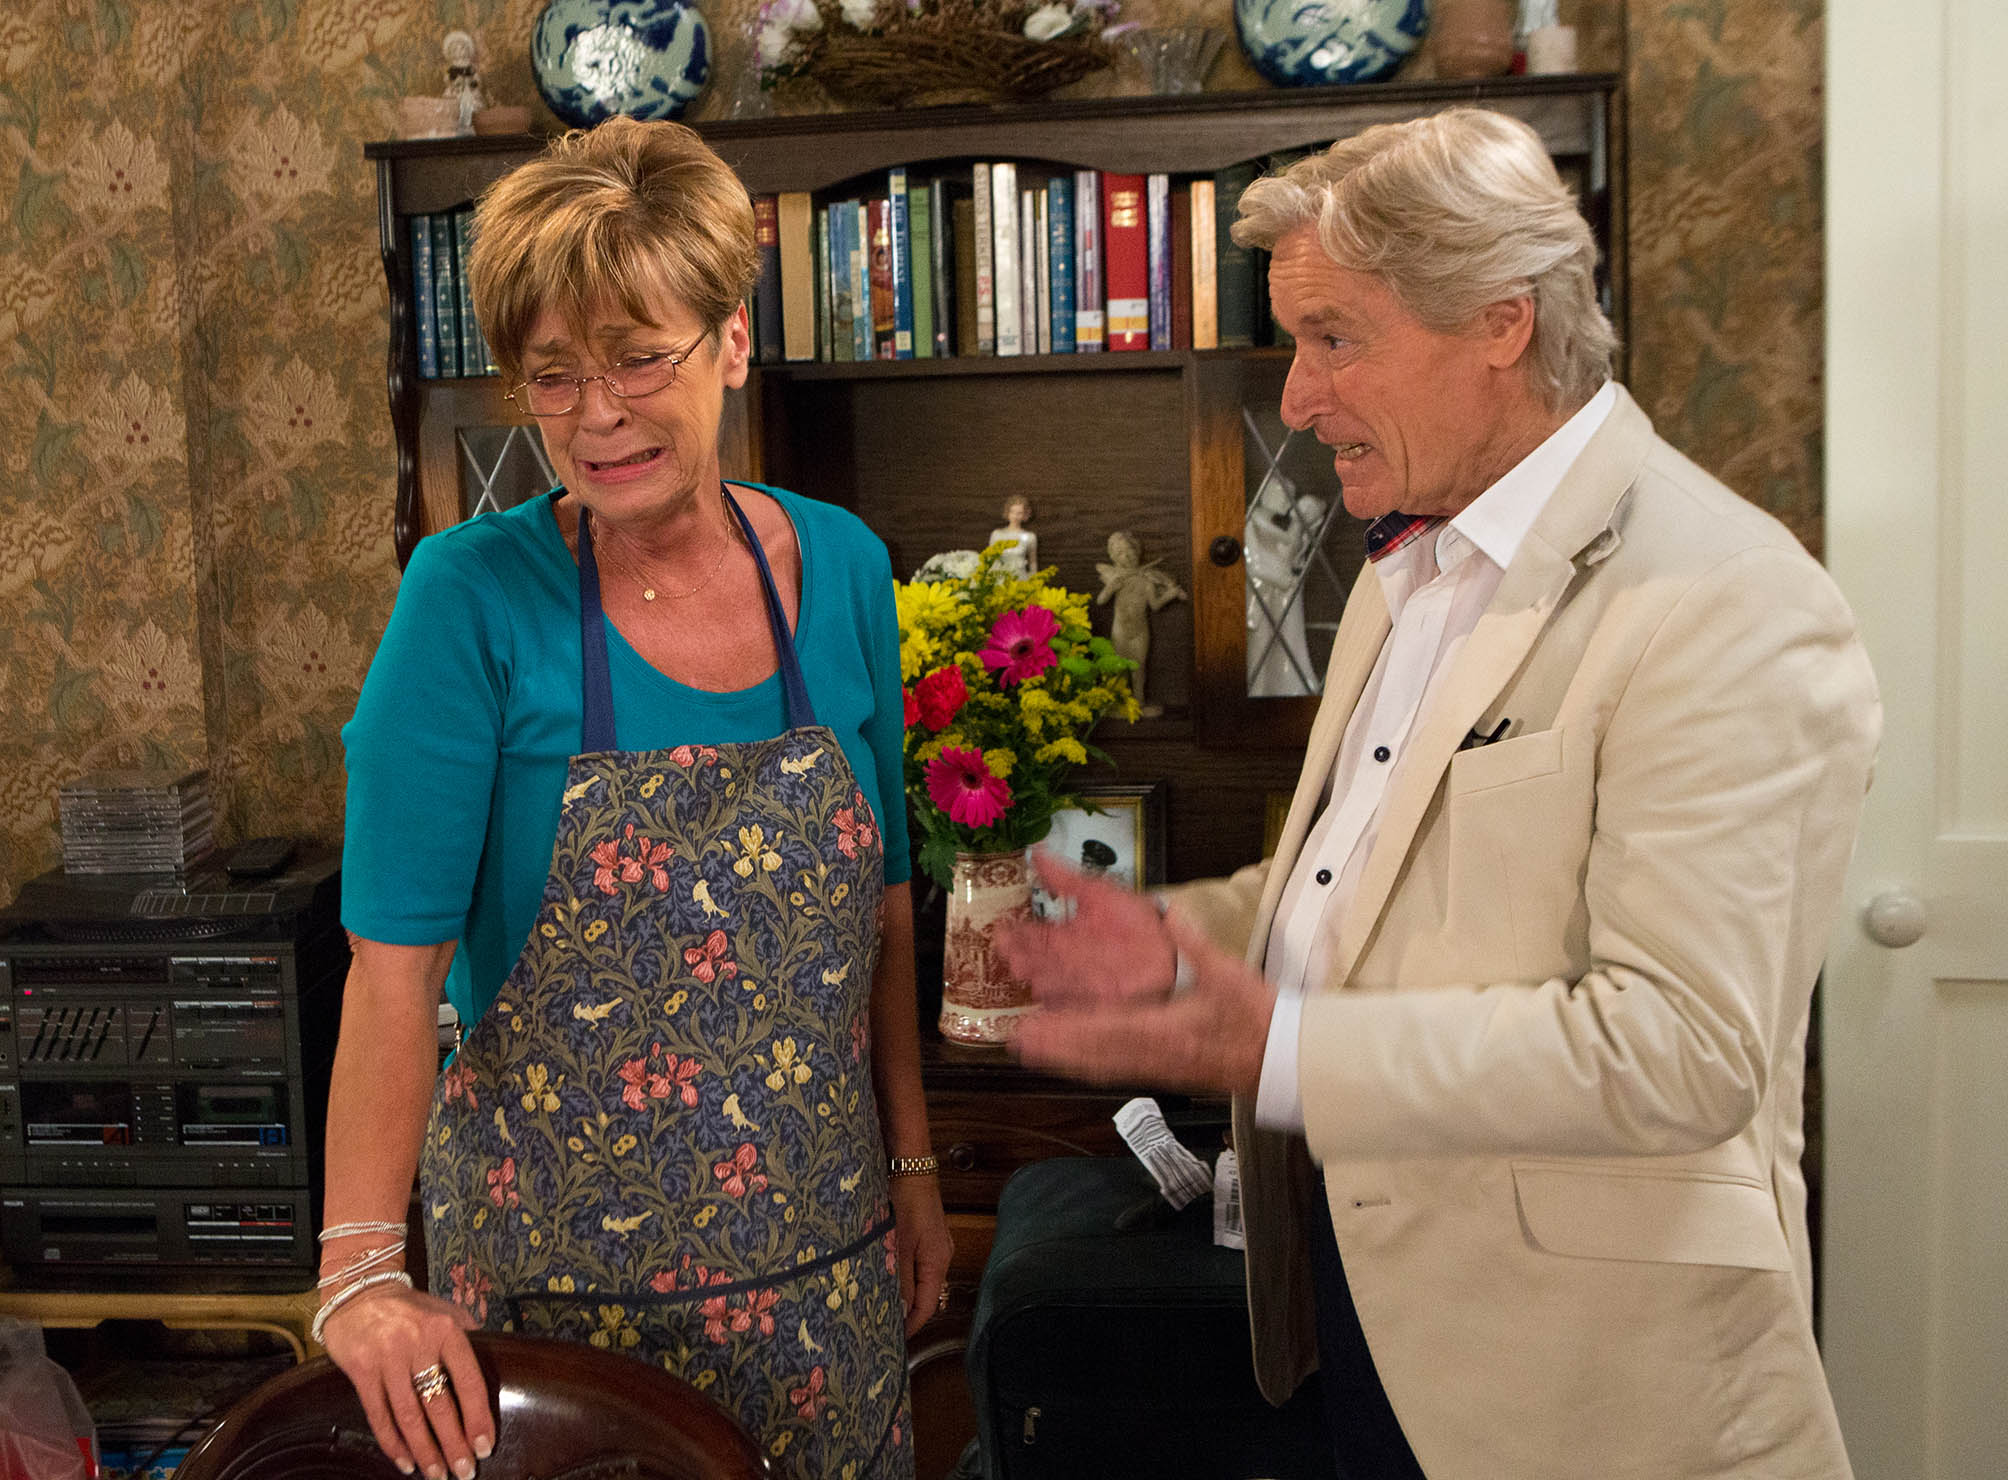 'We've bl**dy missed you Ken': Twitter goes all gooey as Ken Barlow makes grand return to Coronation Street